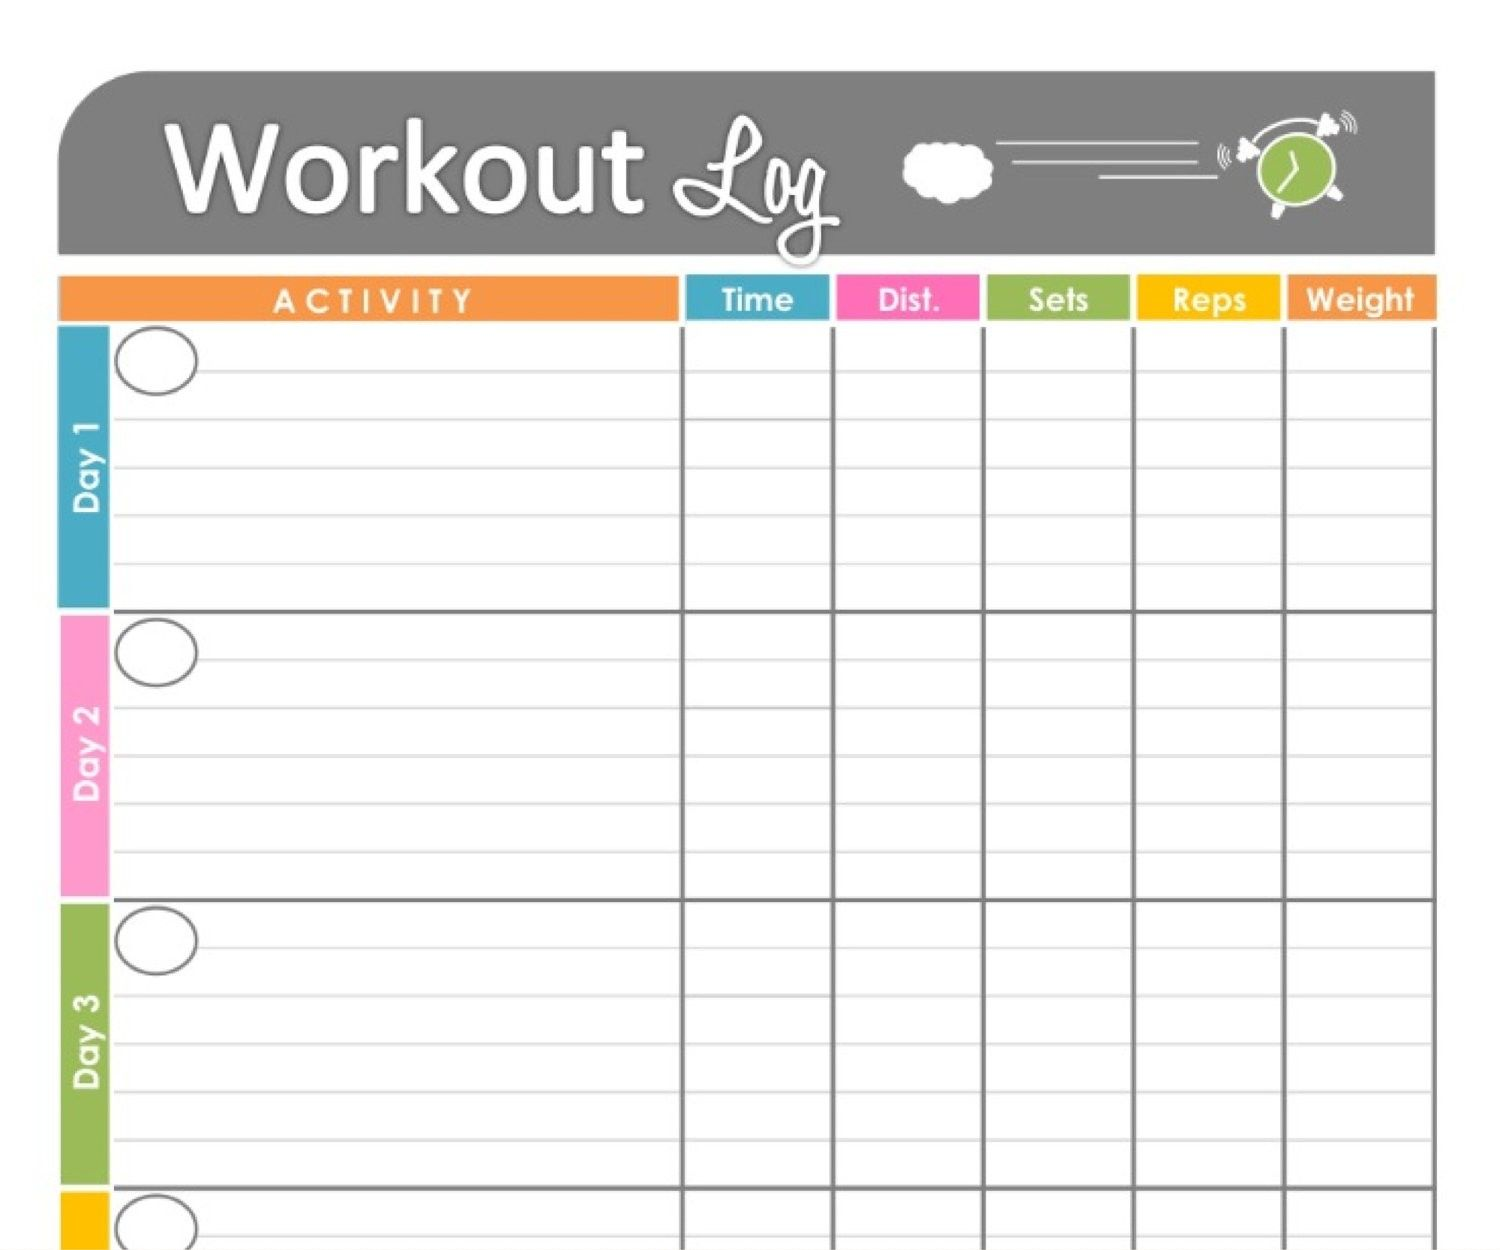 photograph regarding Printable Workout Schedule named No cost Printable Work out Program Blank Calendar Printing